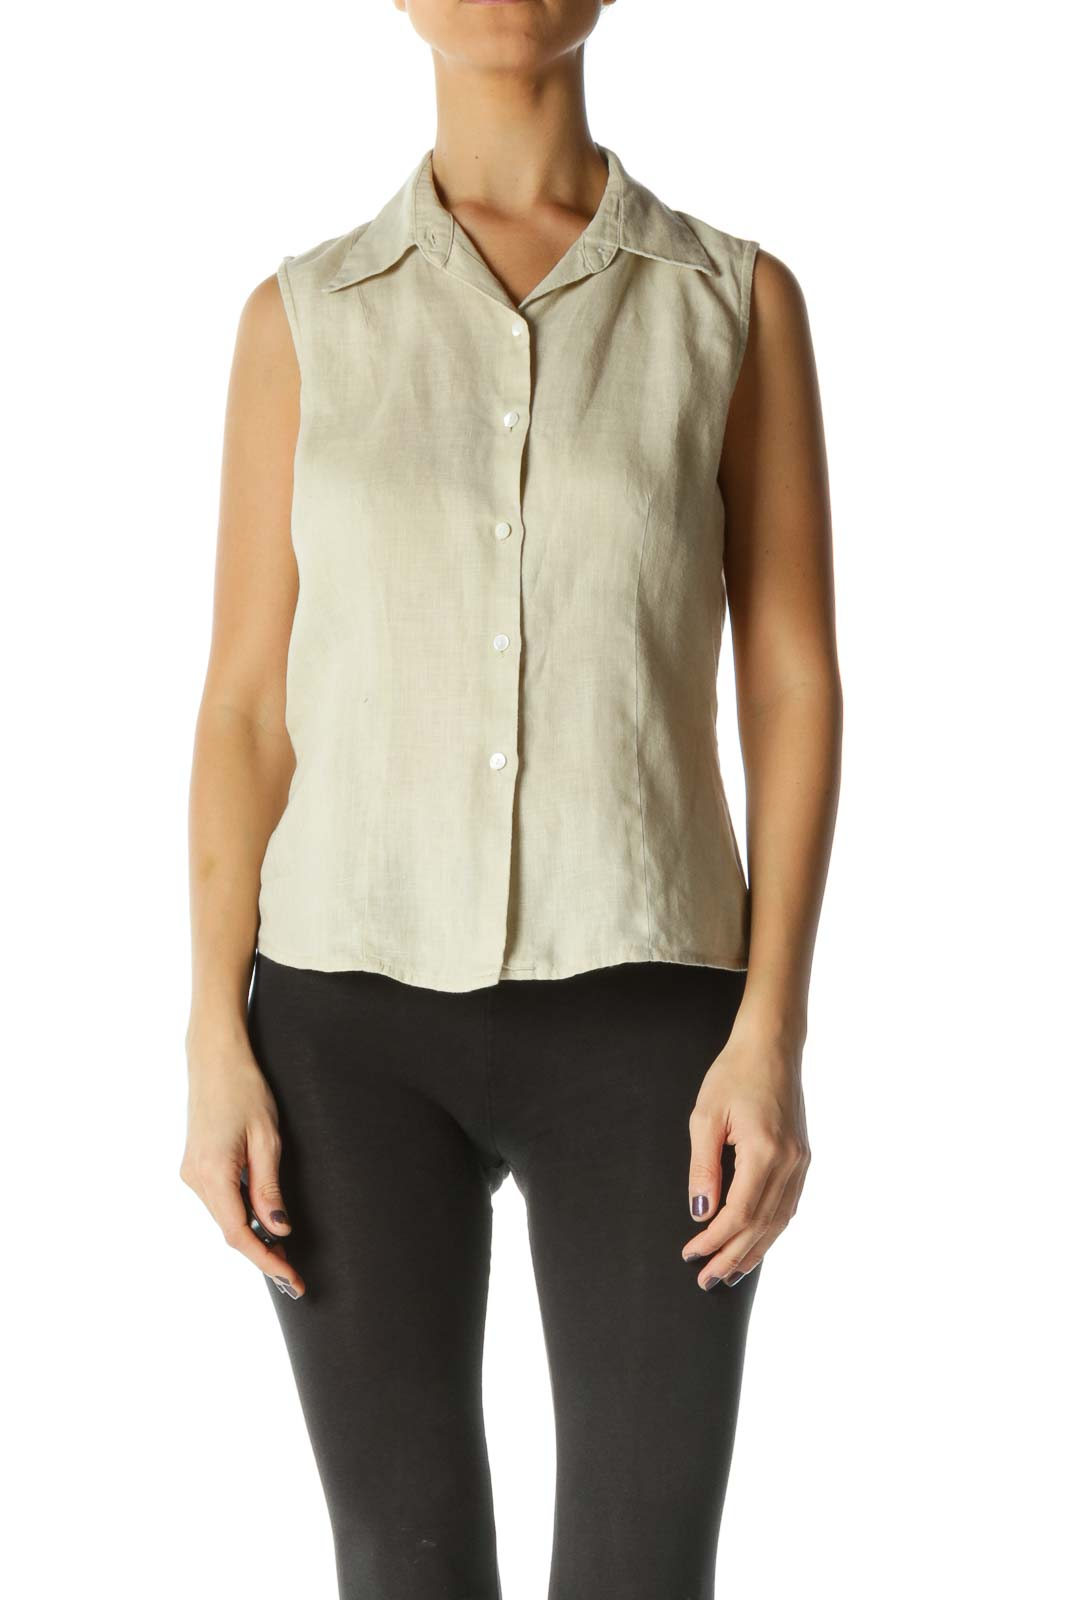 Beige Collared Buttoned 100% Linen Top